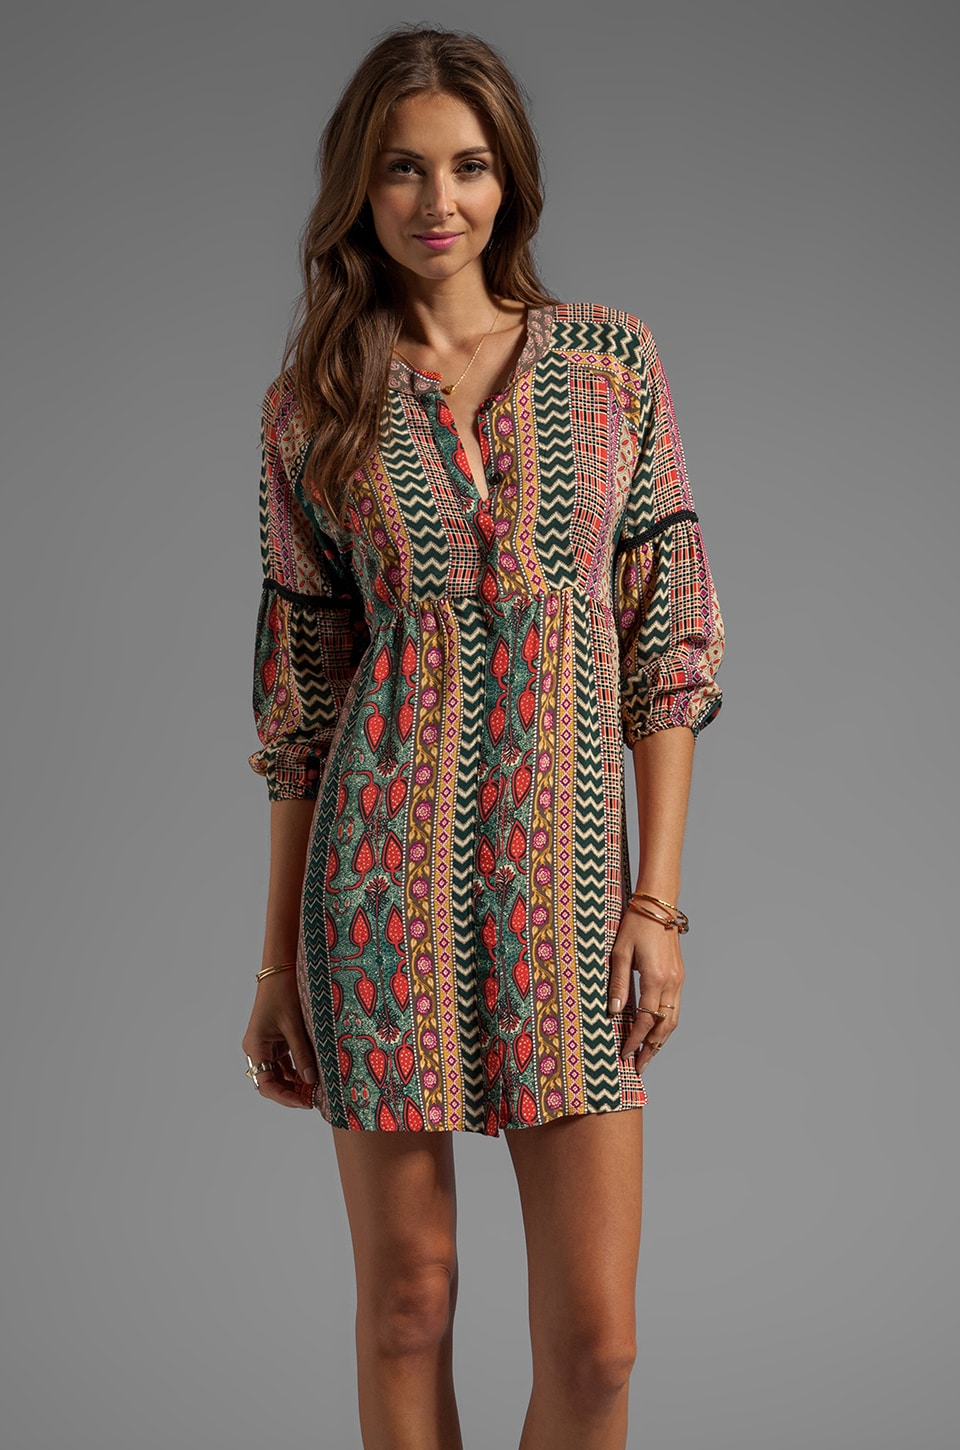 Tigerlily Shakeela Shirt Dress in Bottle